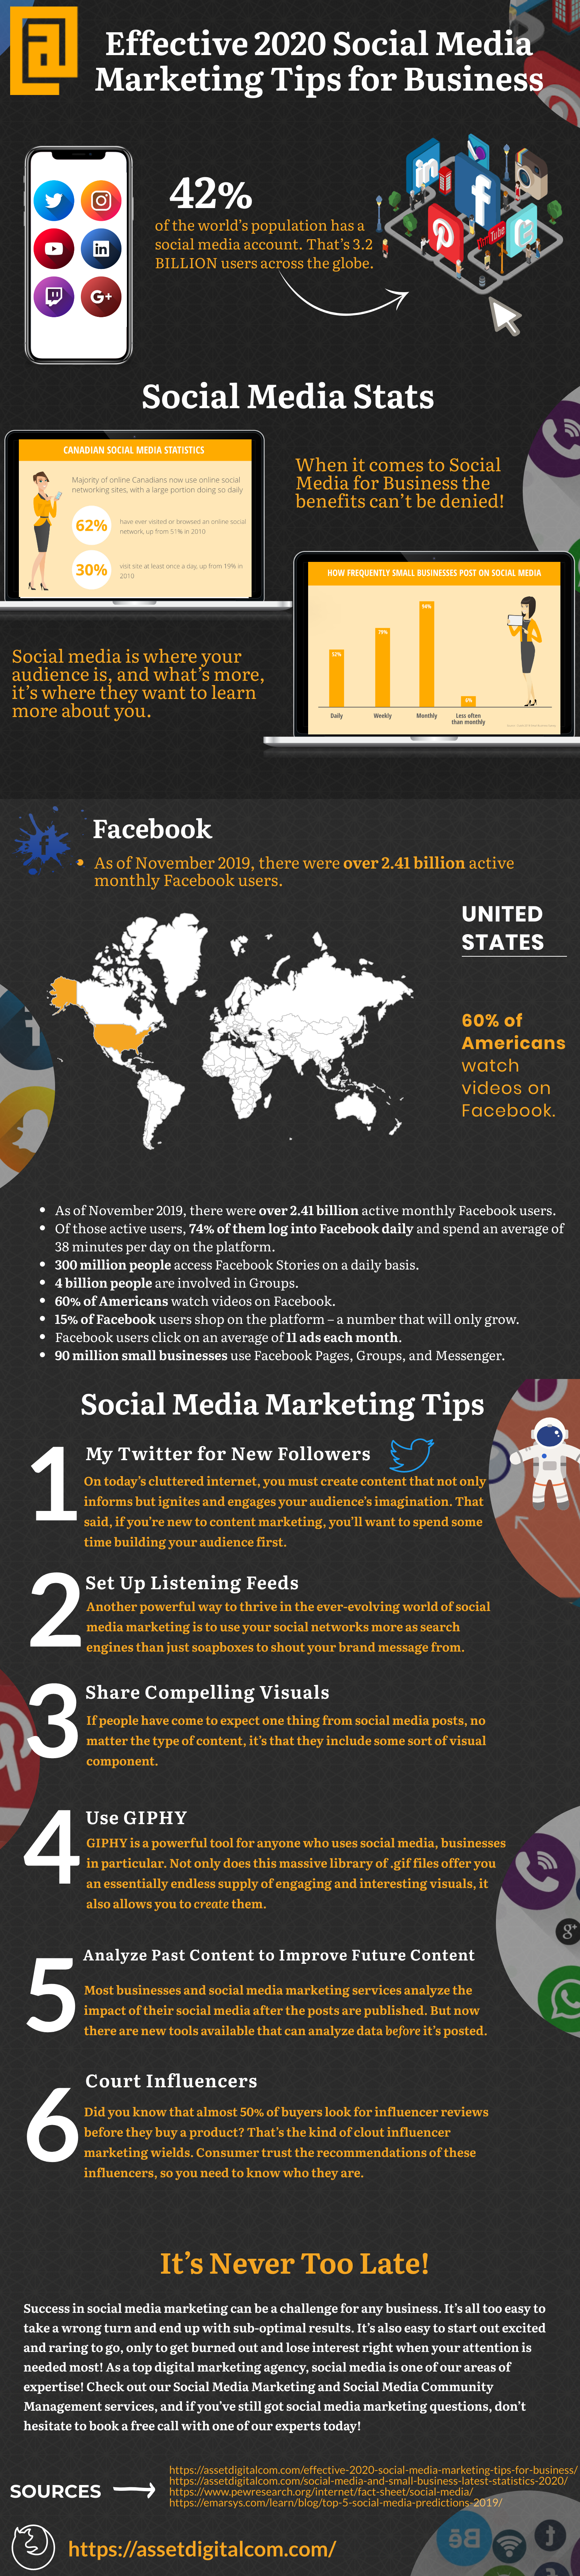 Effective 2020 Social Media Marketing Tips for Business